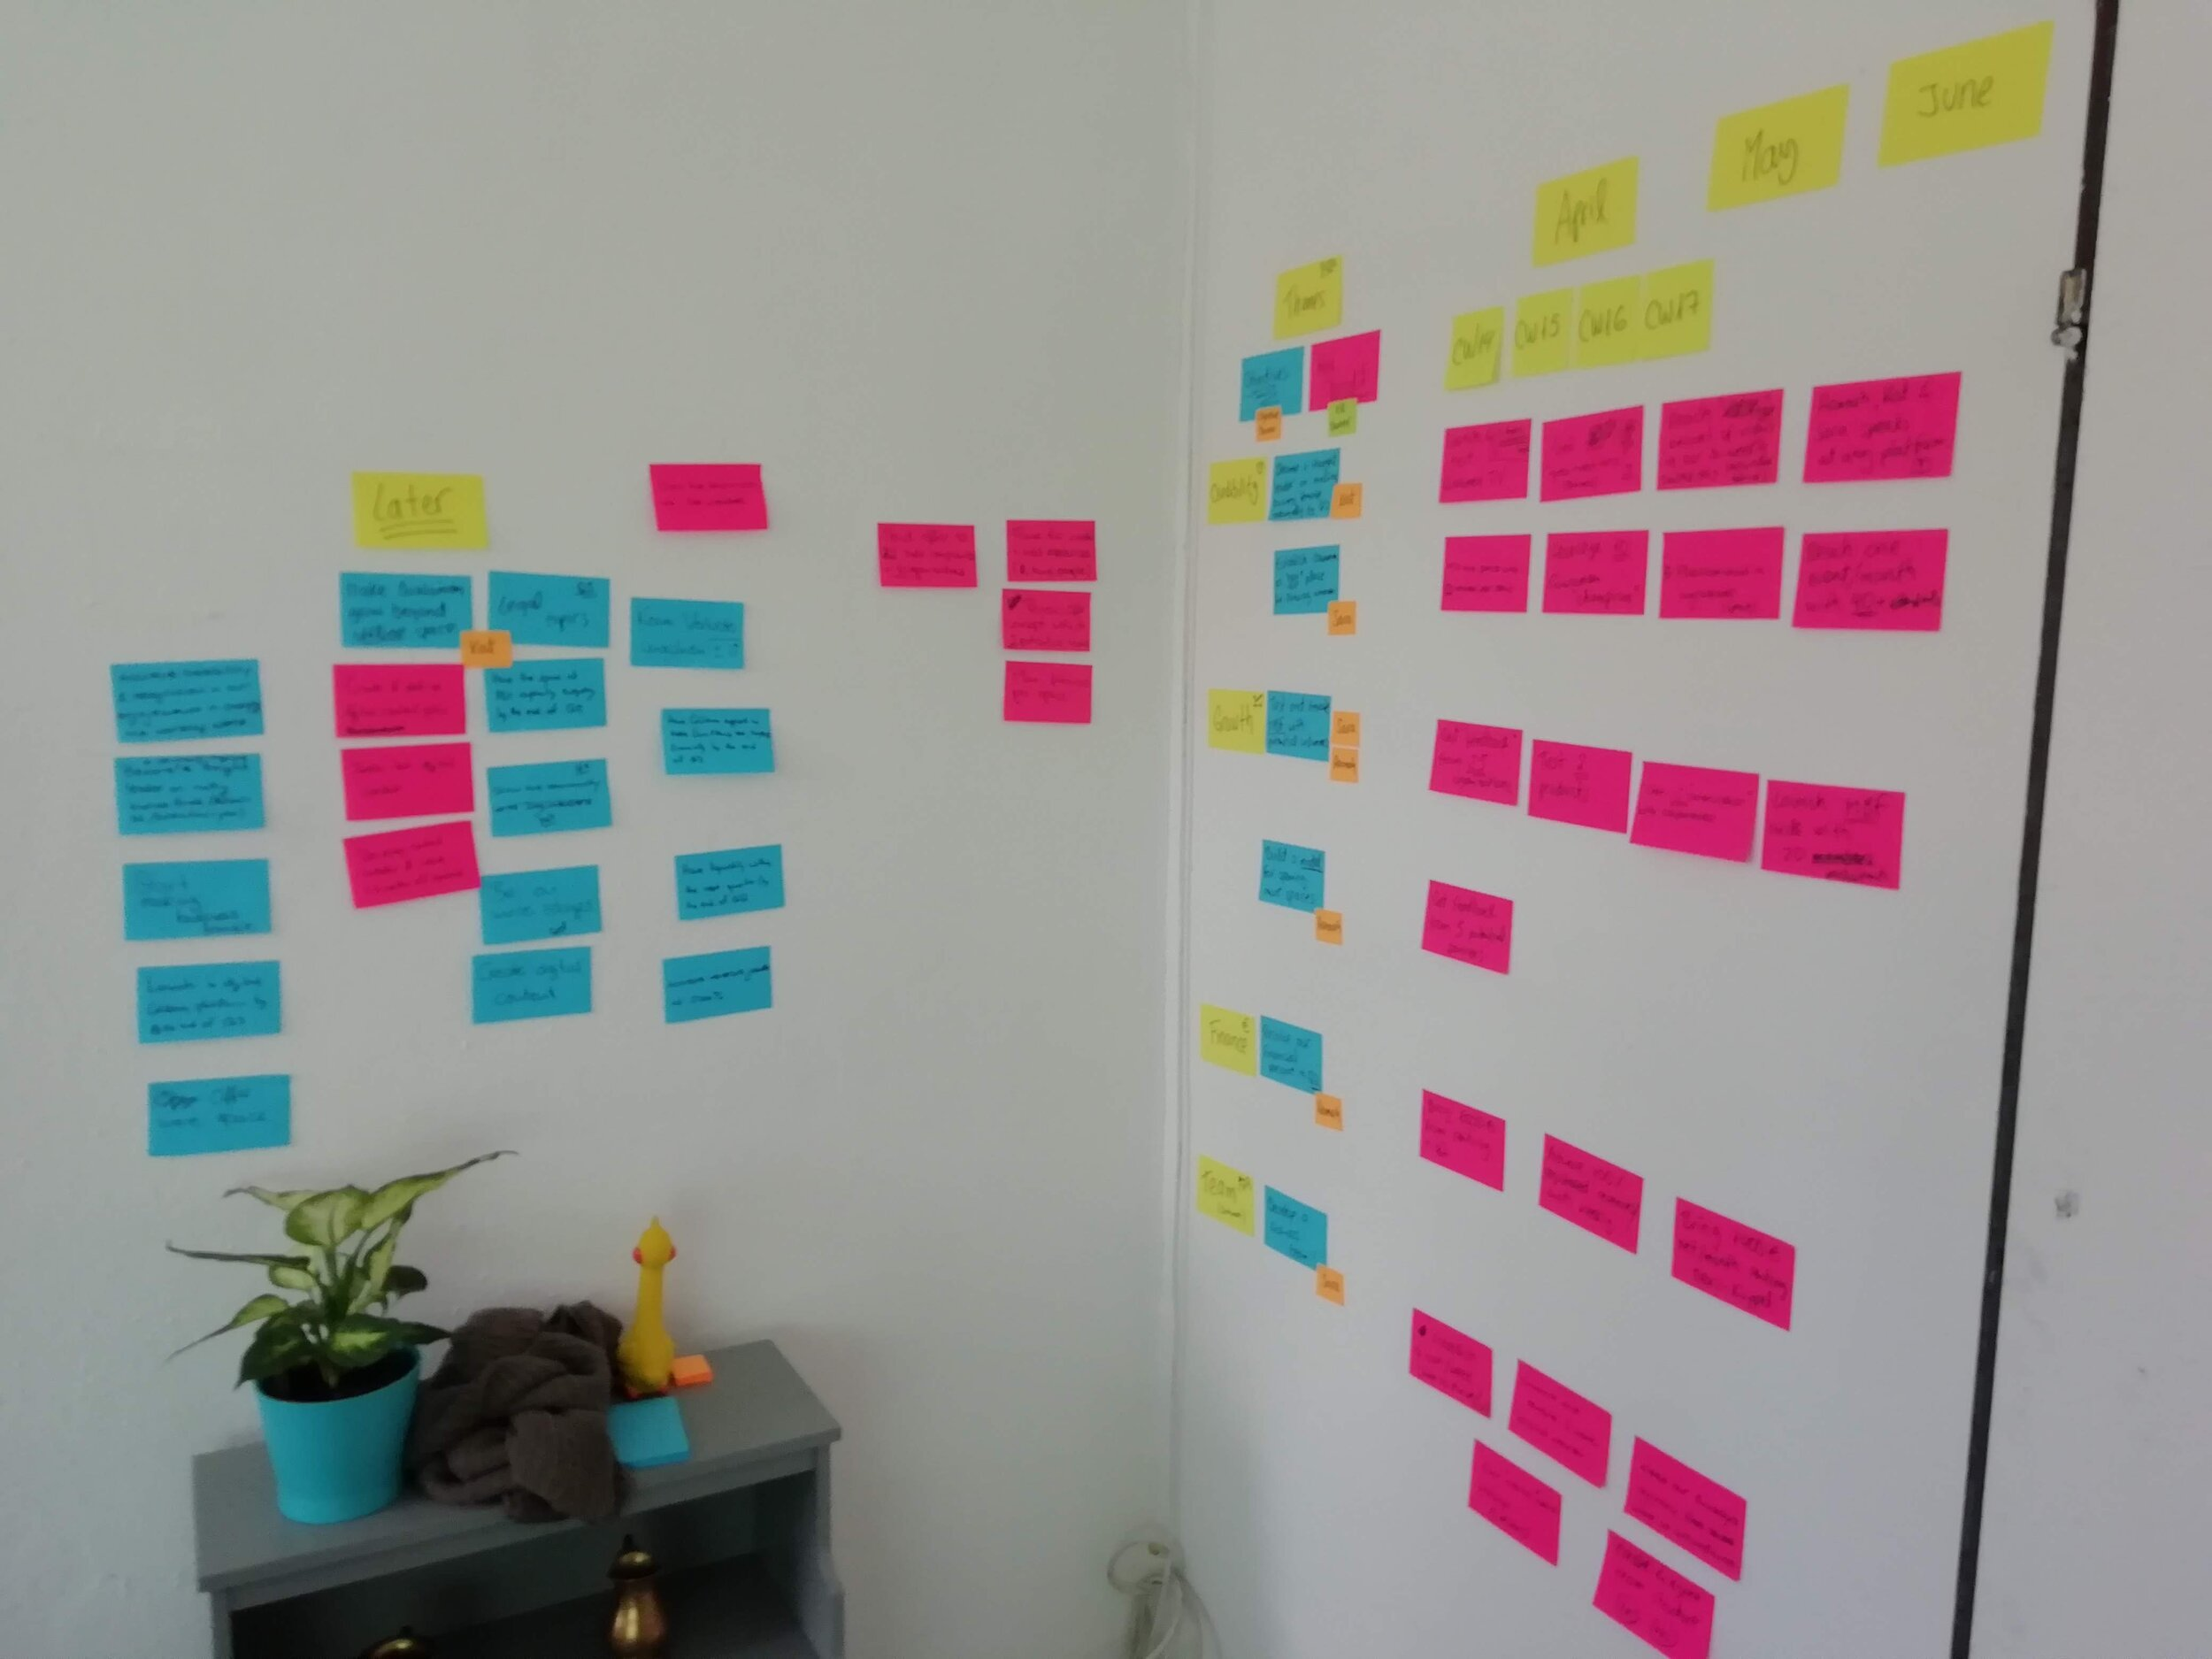 Initial brainstorm and clustering of OKRs for Q3 2019.